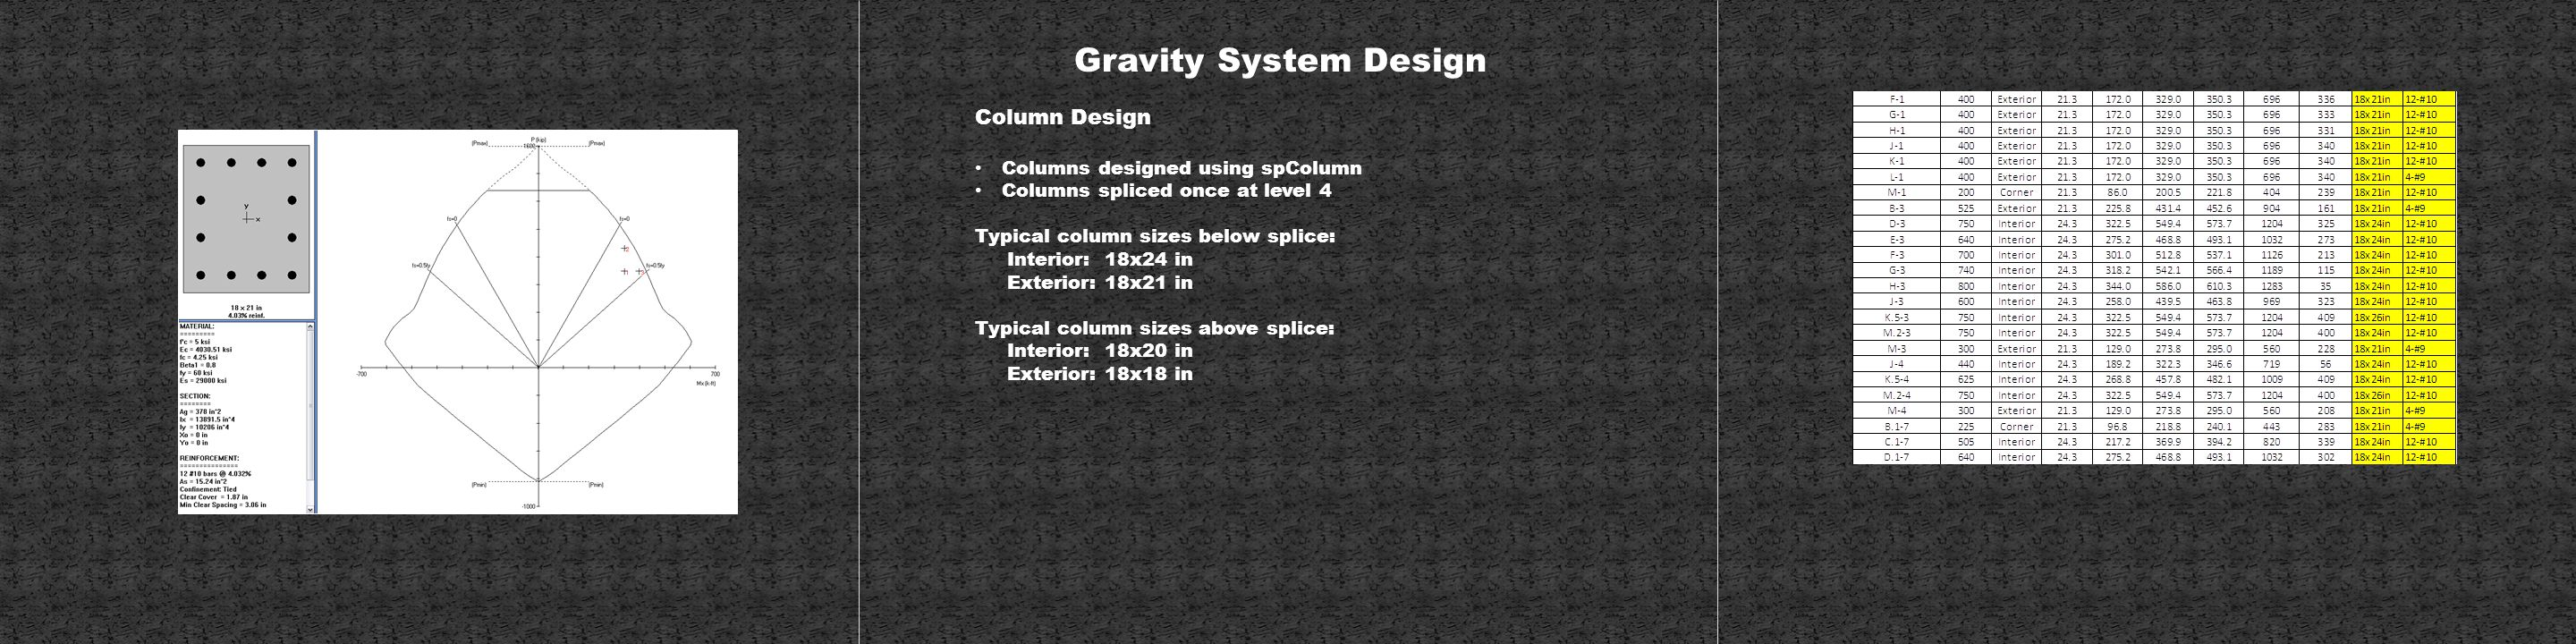 Gravity System Design Column Design Columns designed using spColumn Columns spliced once at level 4 Typical column sizes below splice: Interior: 18x24 in Exterior: 18x21 in Typical column sizes above splice: Interior: 18x20 in Exterior: 18x18 in